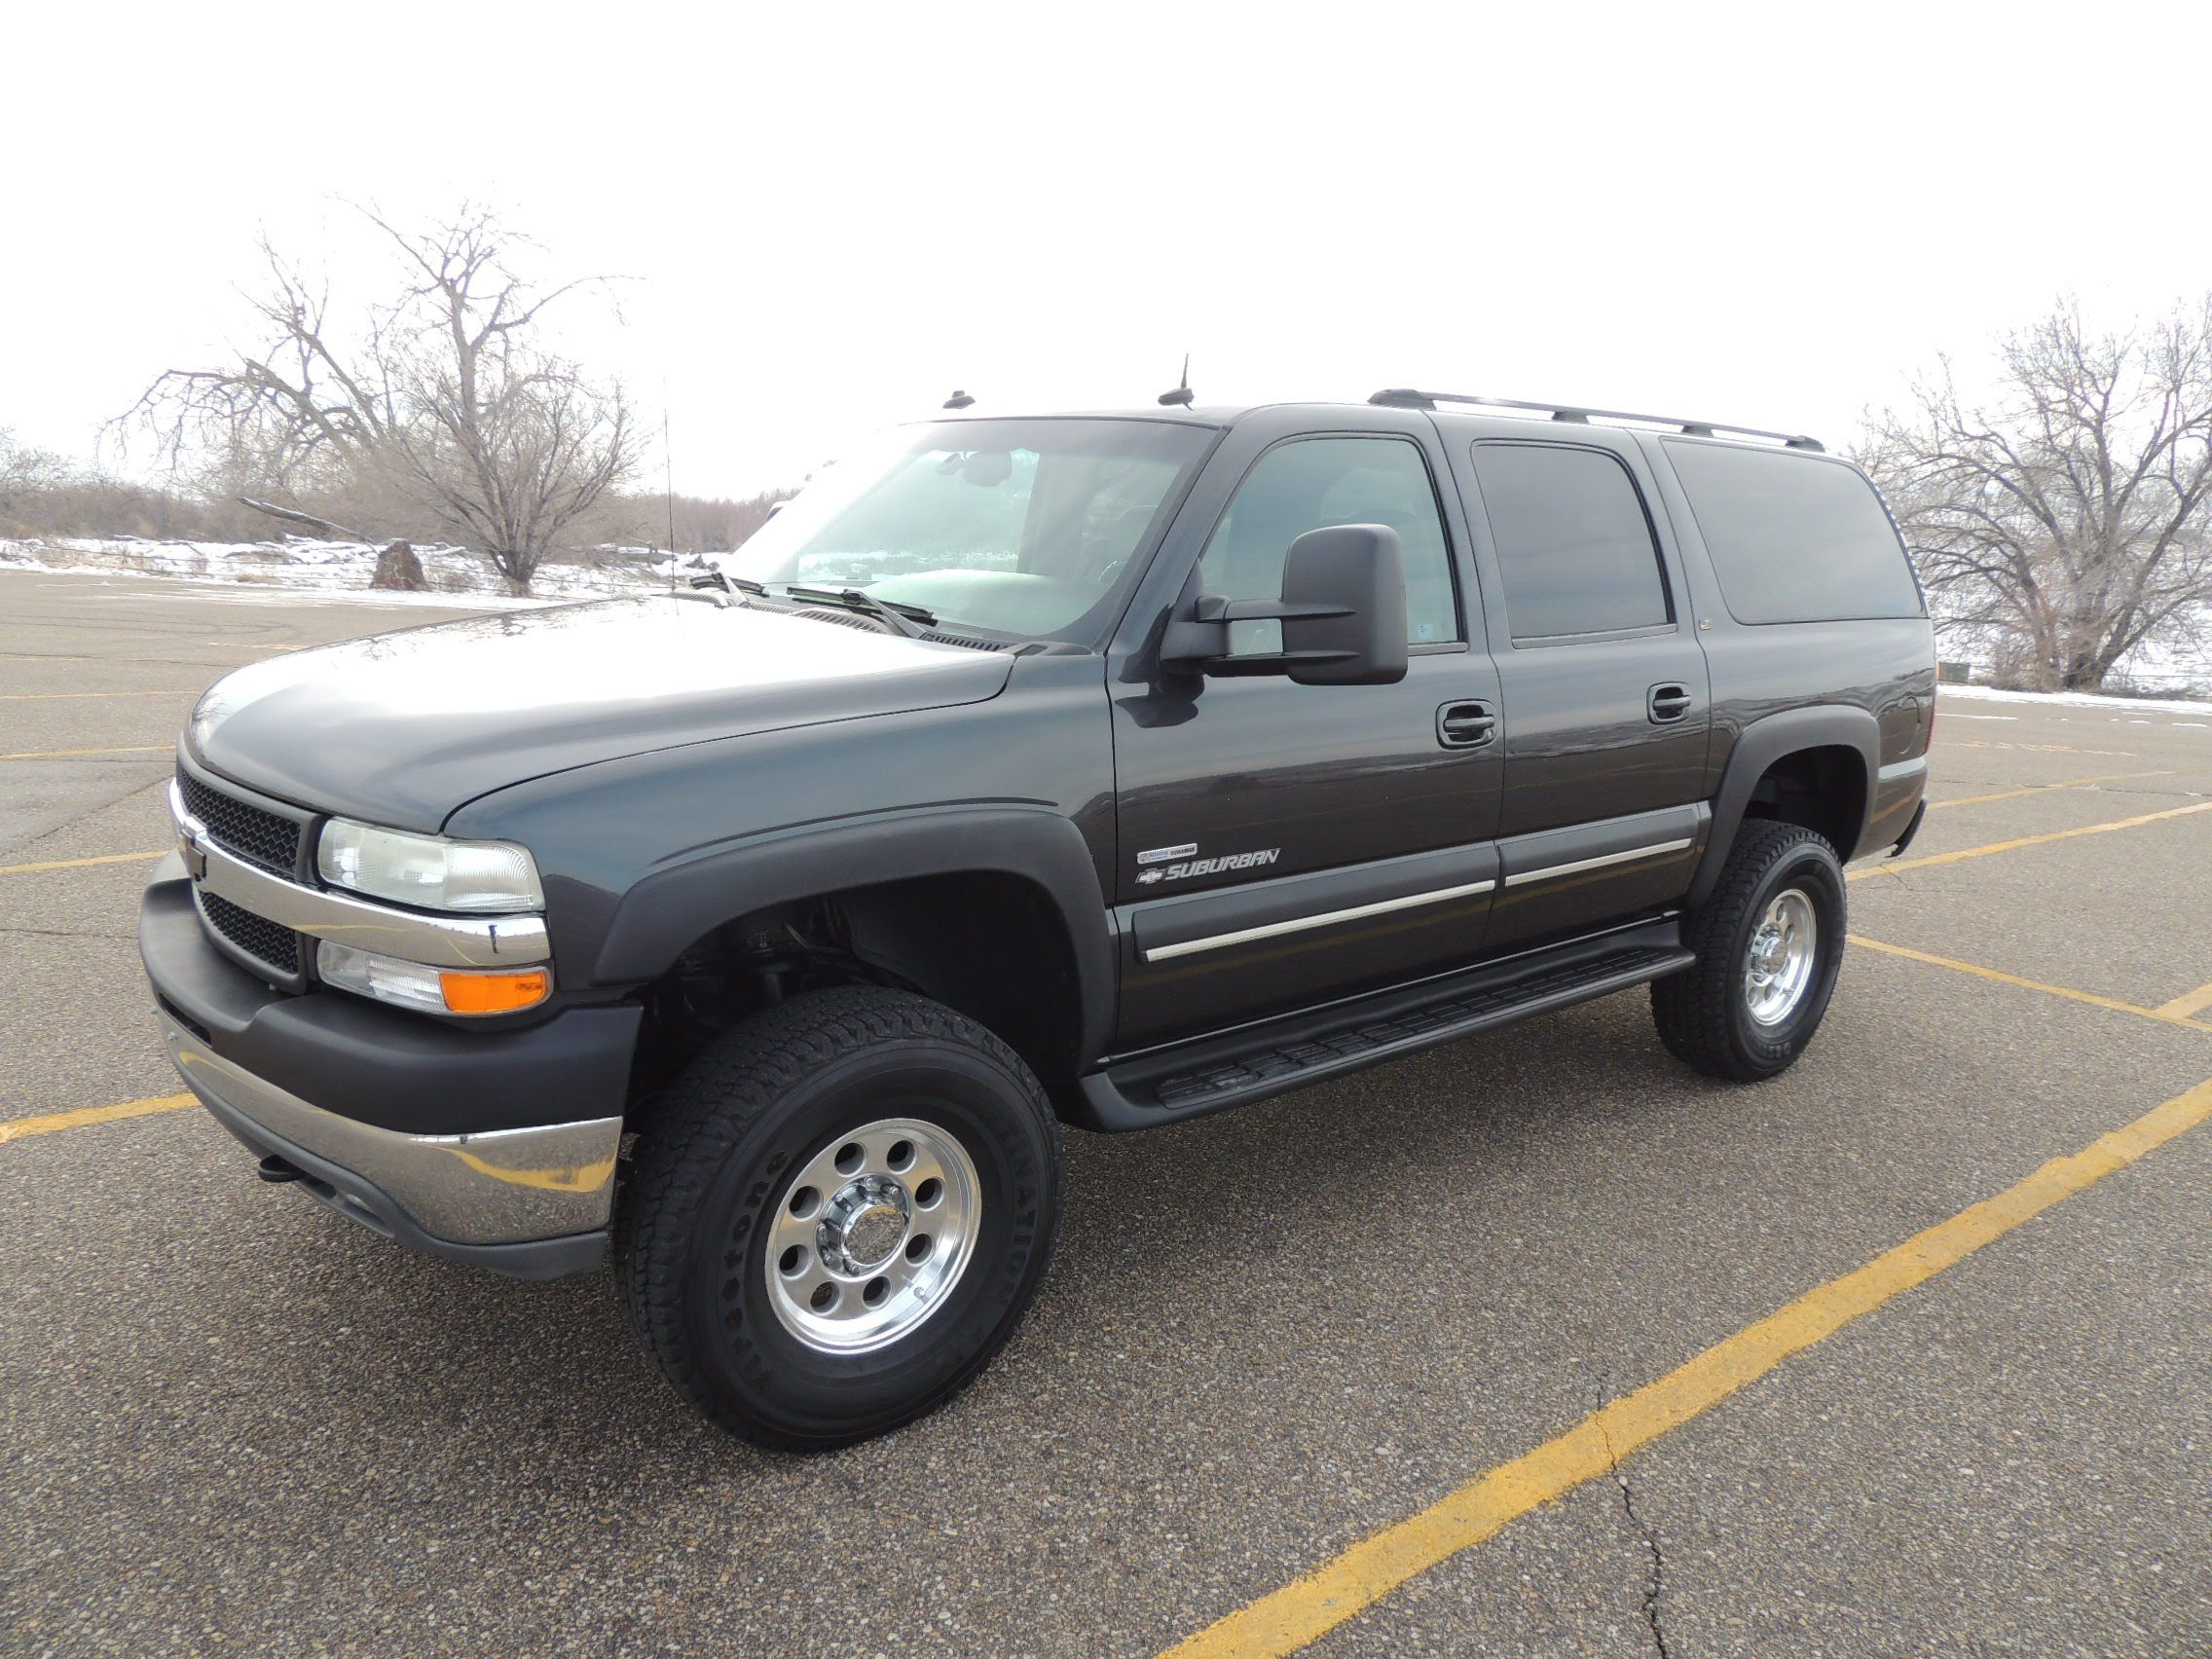 Image Result For Chevrolet Suburban Duramax Diesel With Images